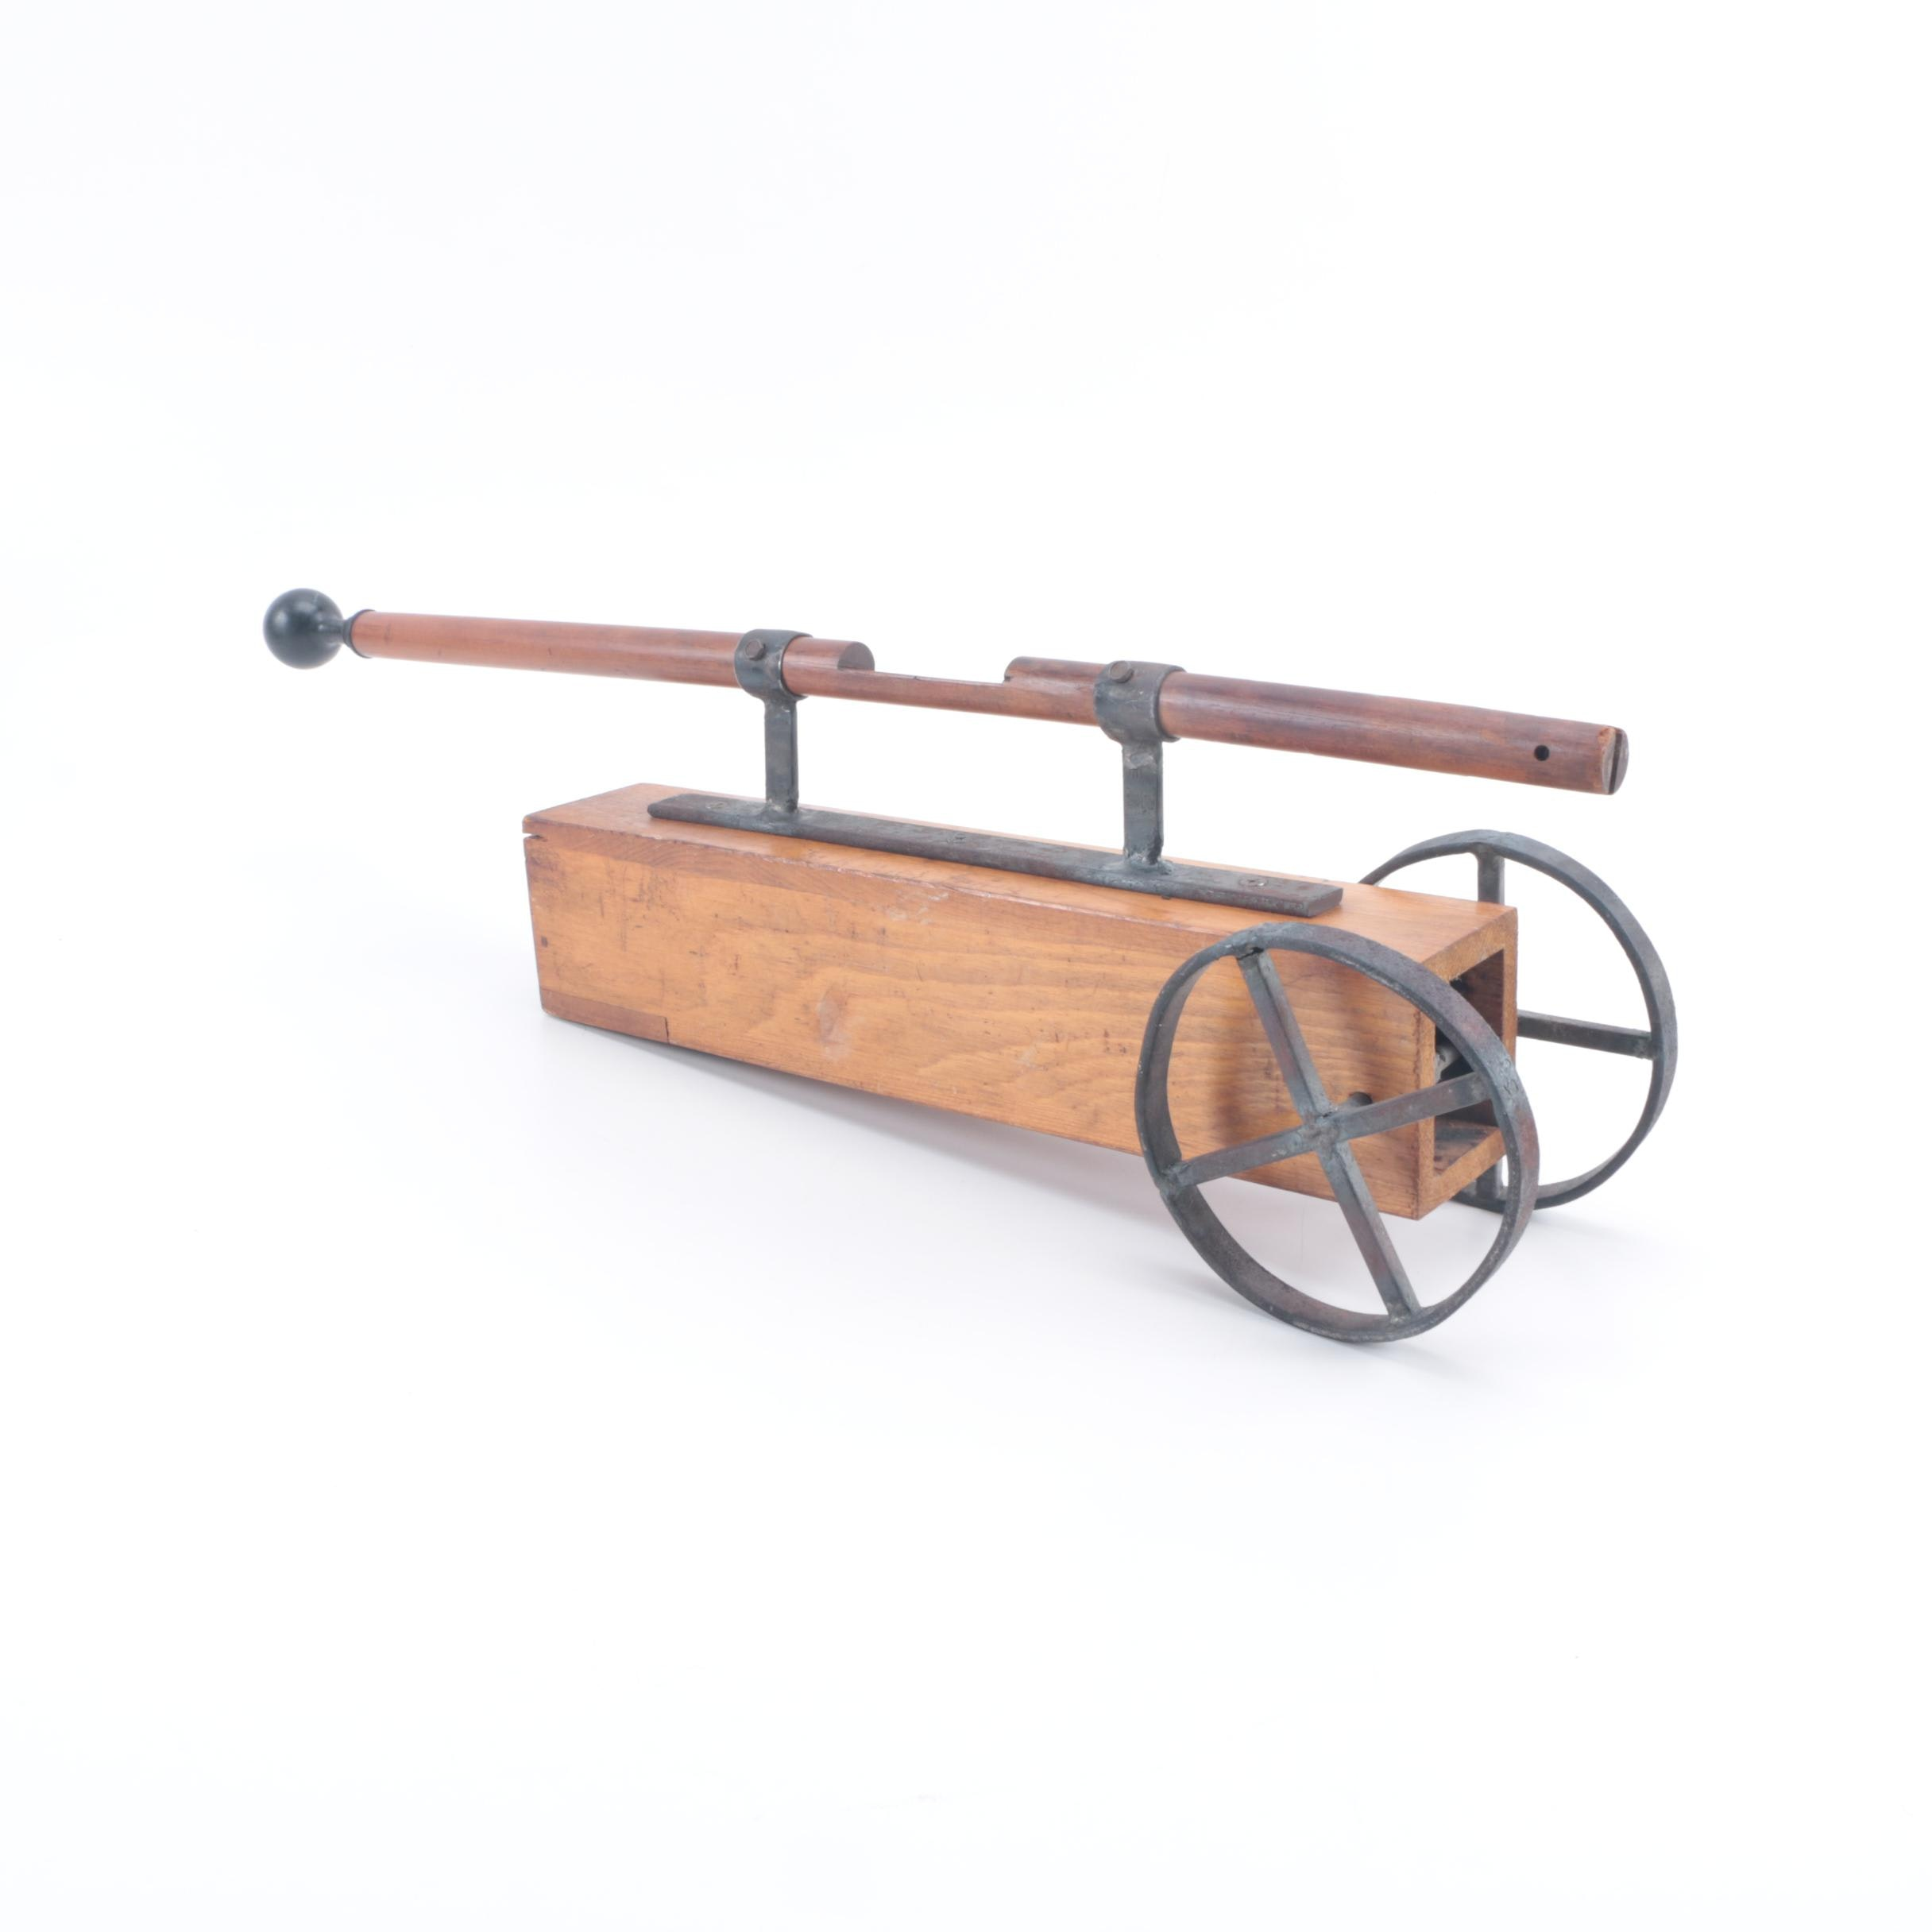 Handmade Two-Wheeled Toy with Reclaimed Wooden Organ Pipe